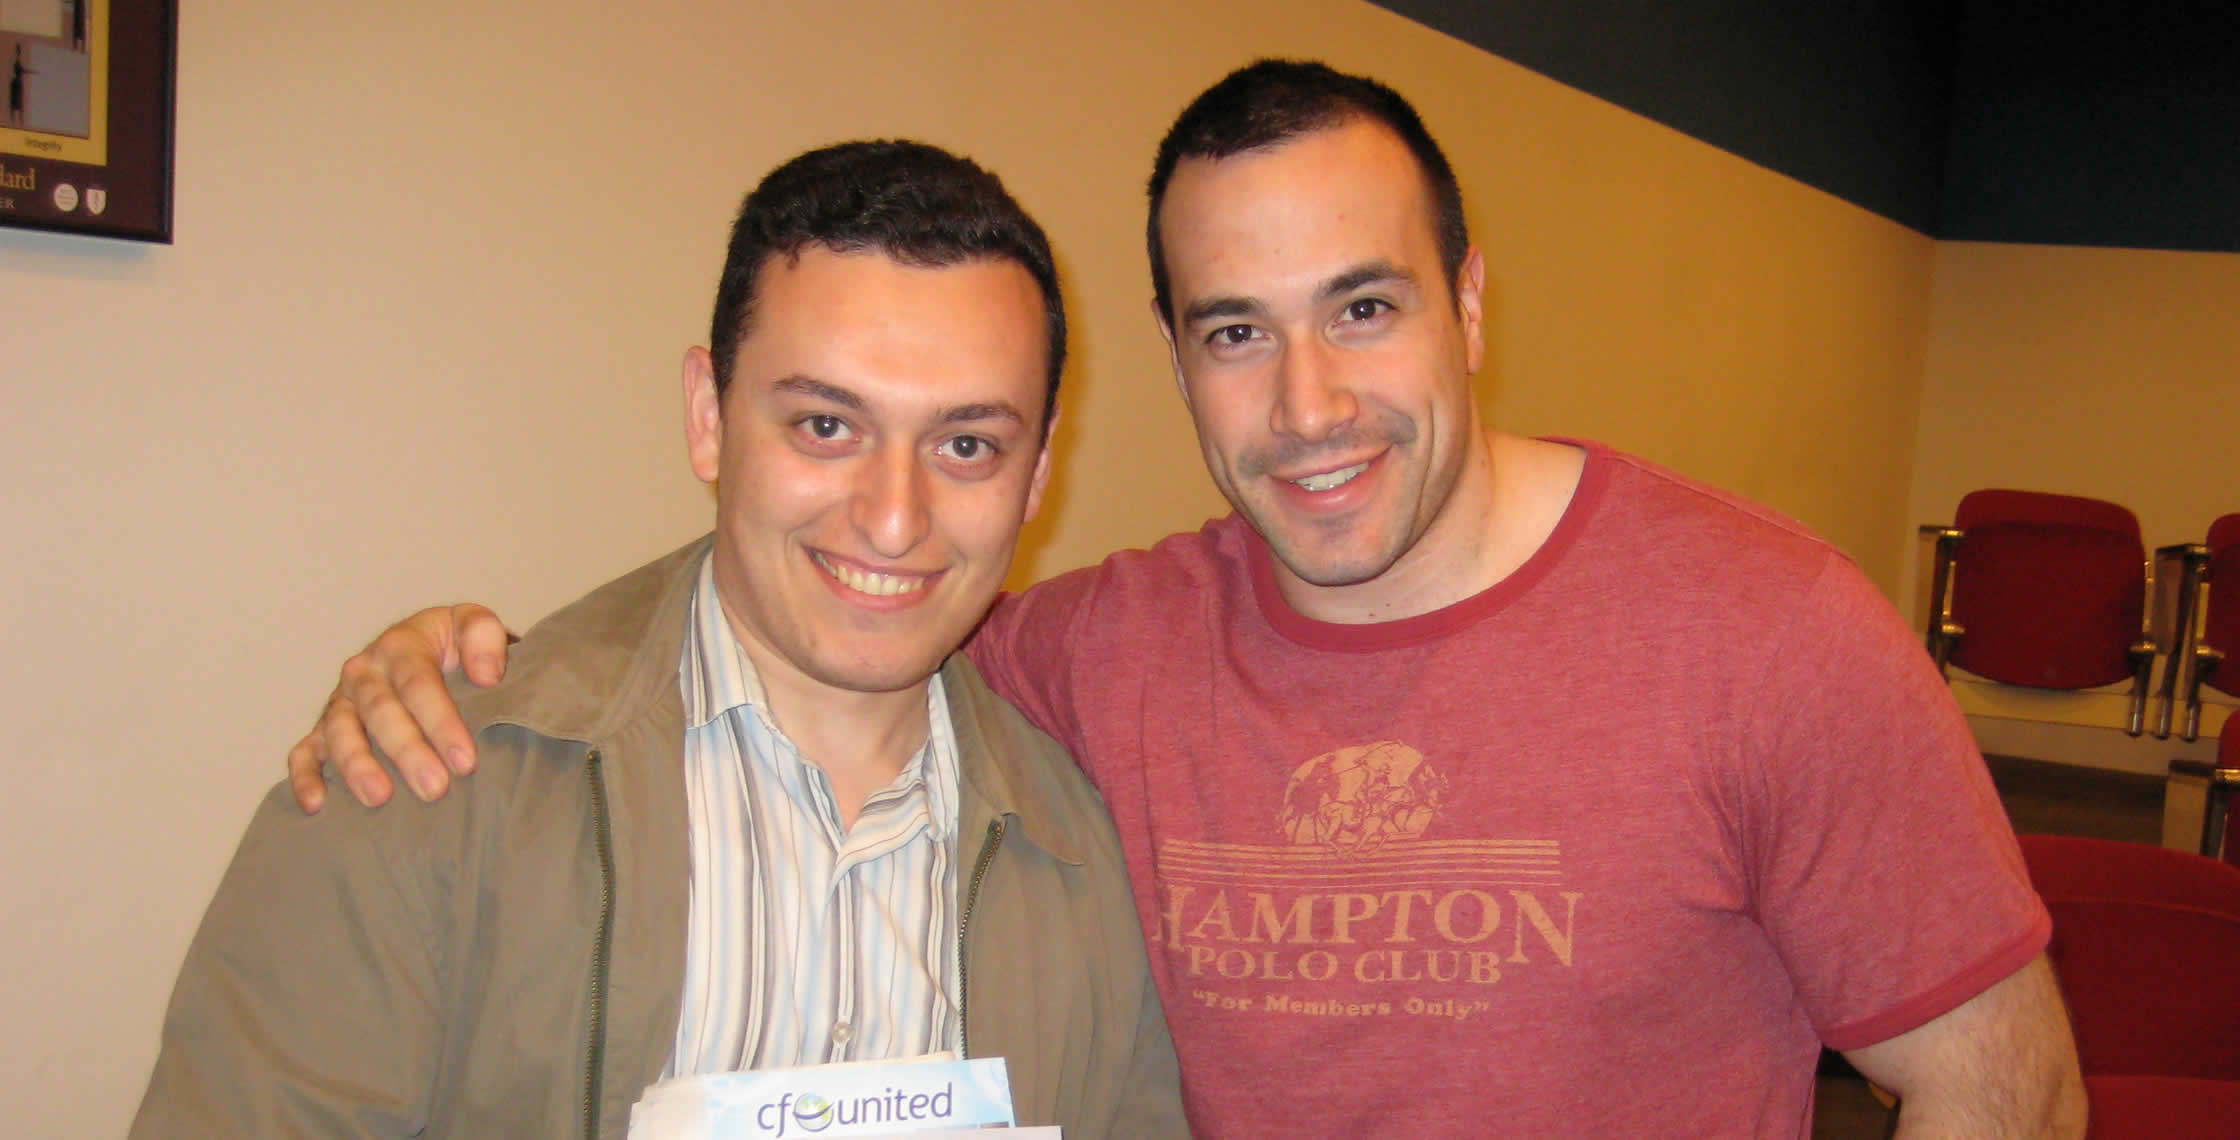 Ben Nadel at the New York ColdFusion User Group (Apr. 2008) with: Dmitriy Goltseker